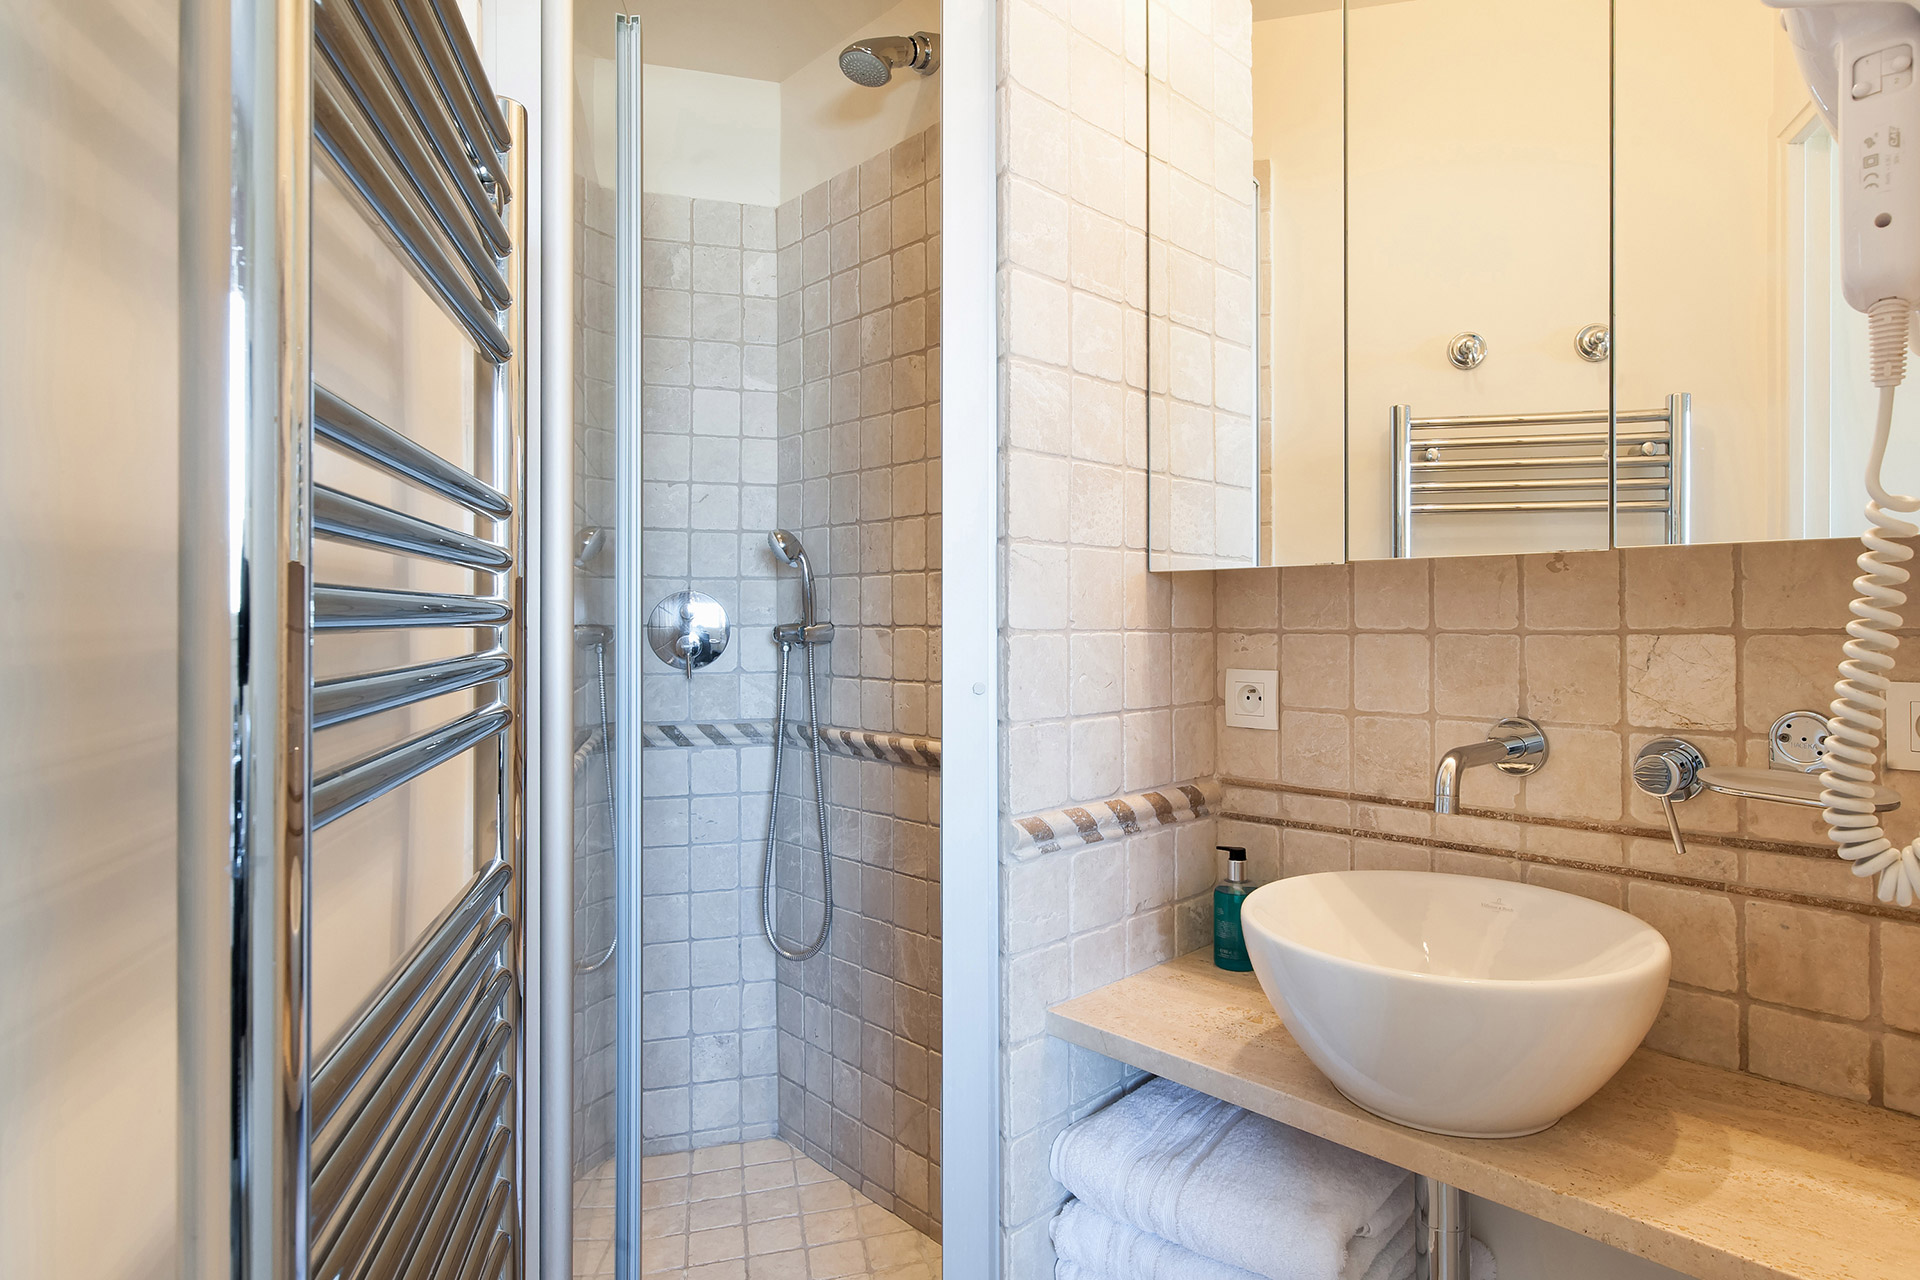 Well-designed bathroom with full-sized shower and sink